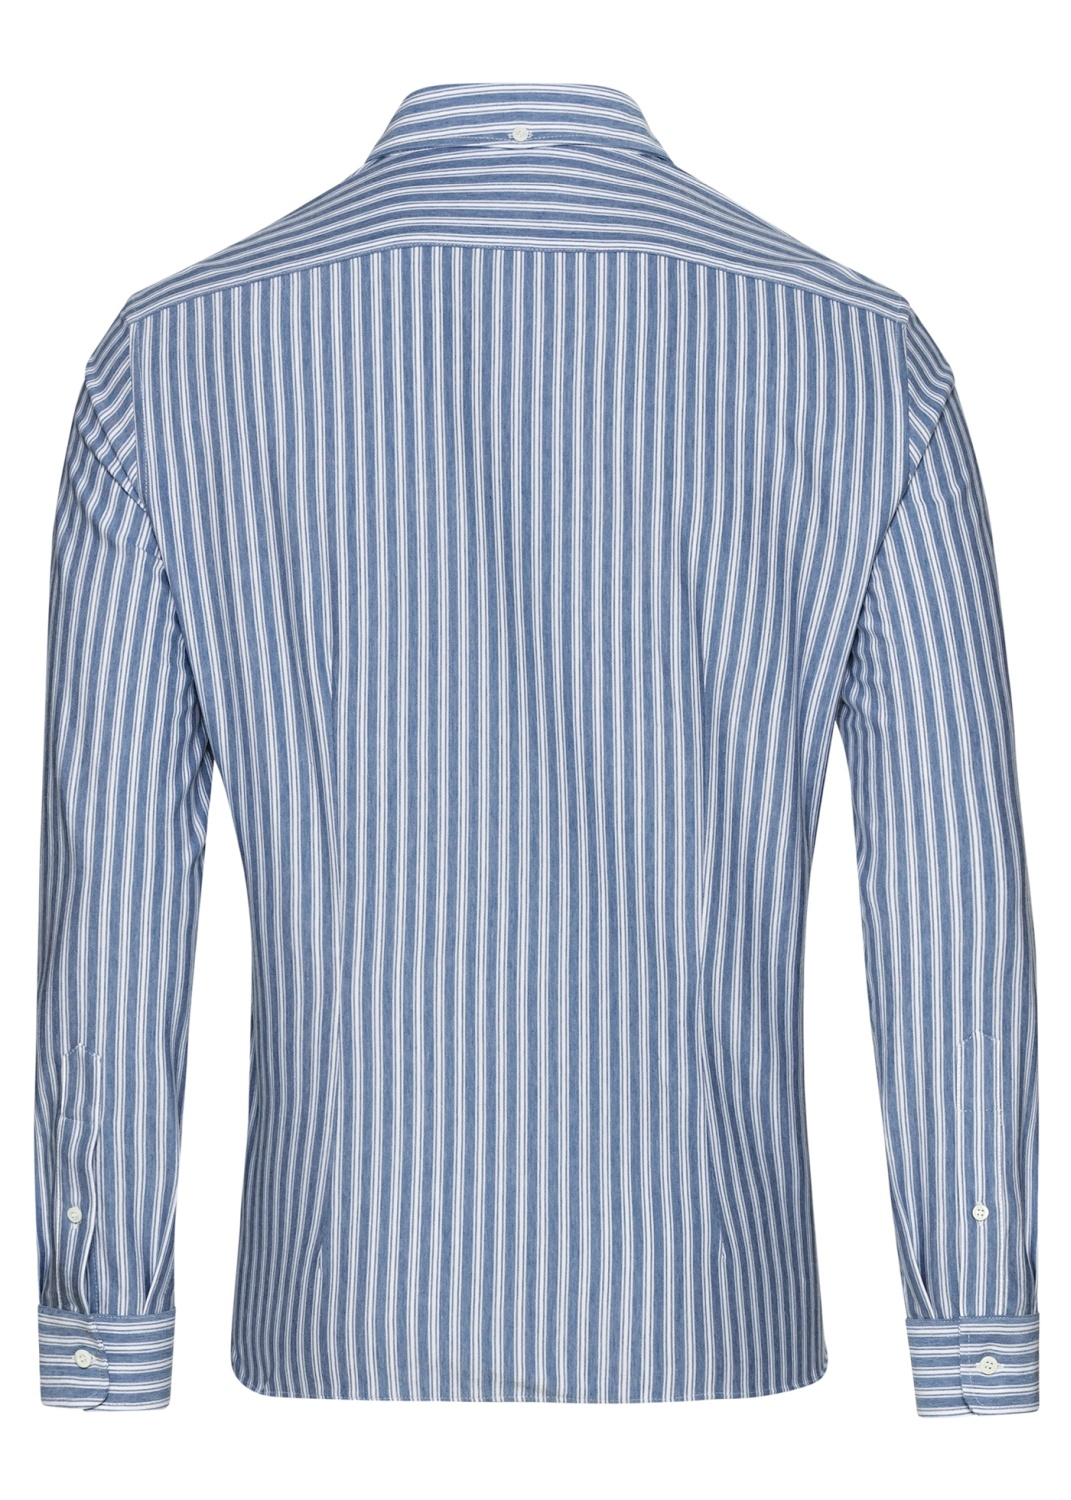 Cotton Jersey Striped Shirt image number 1